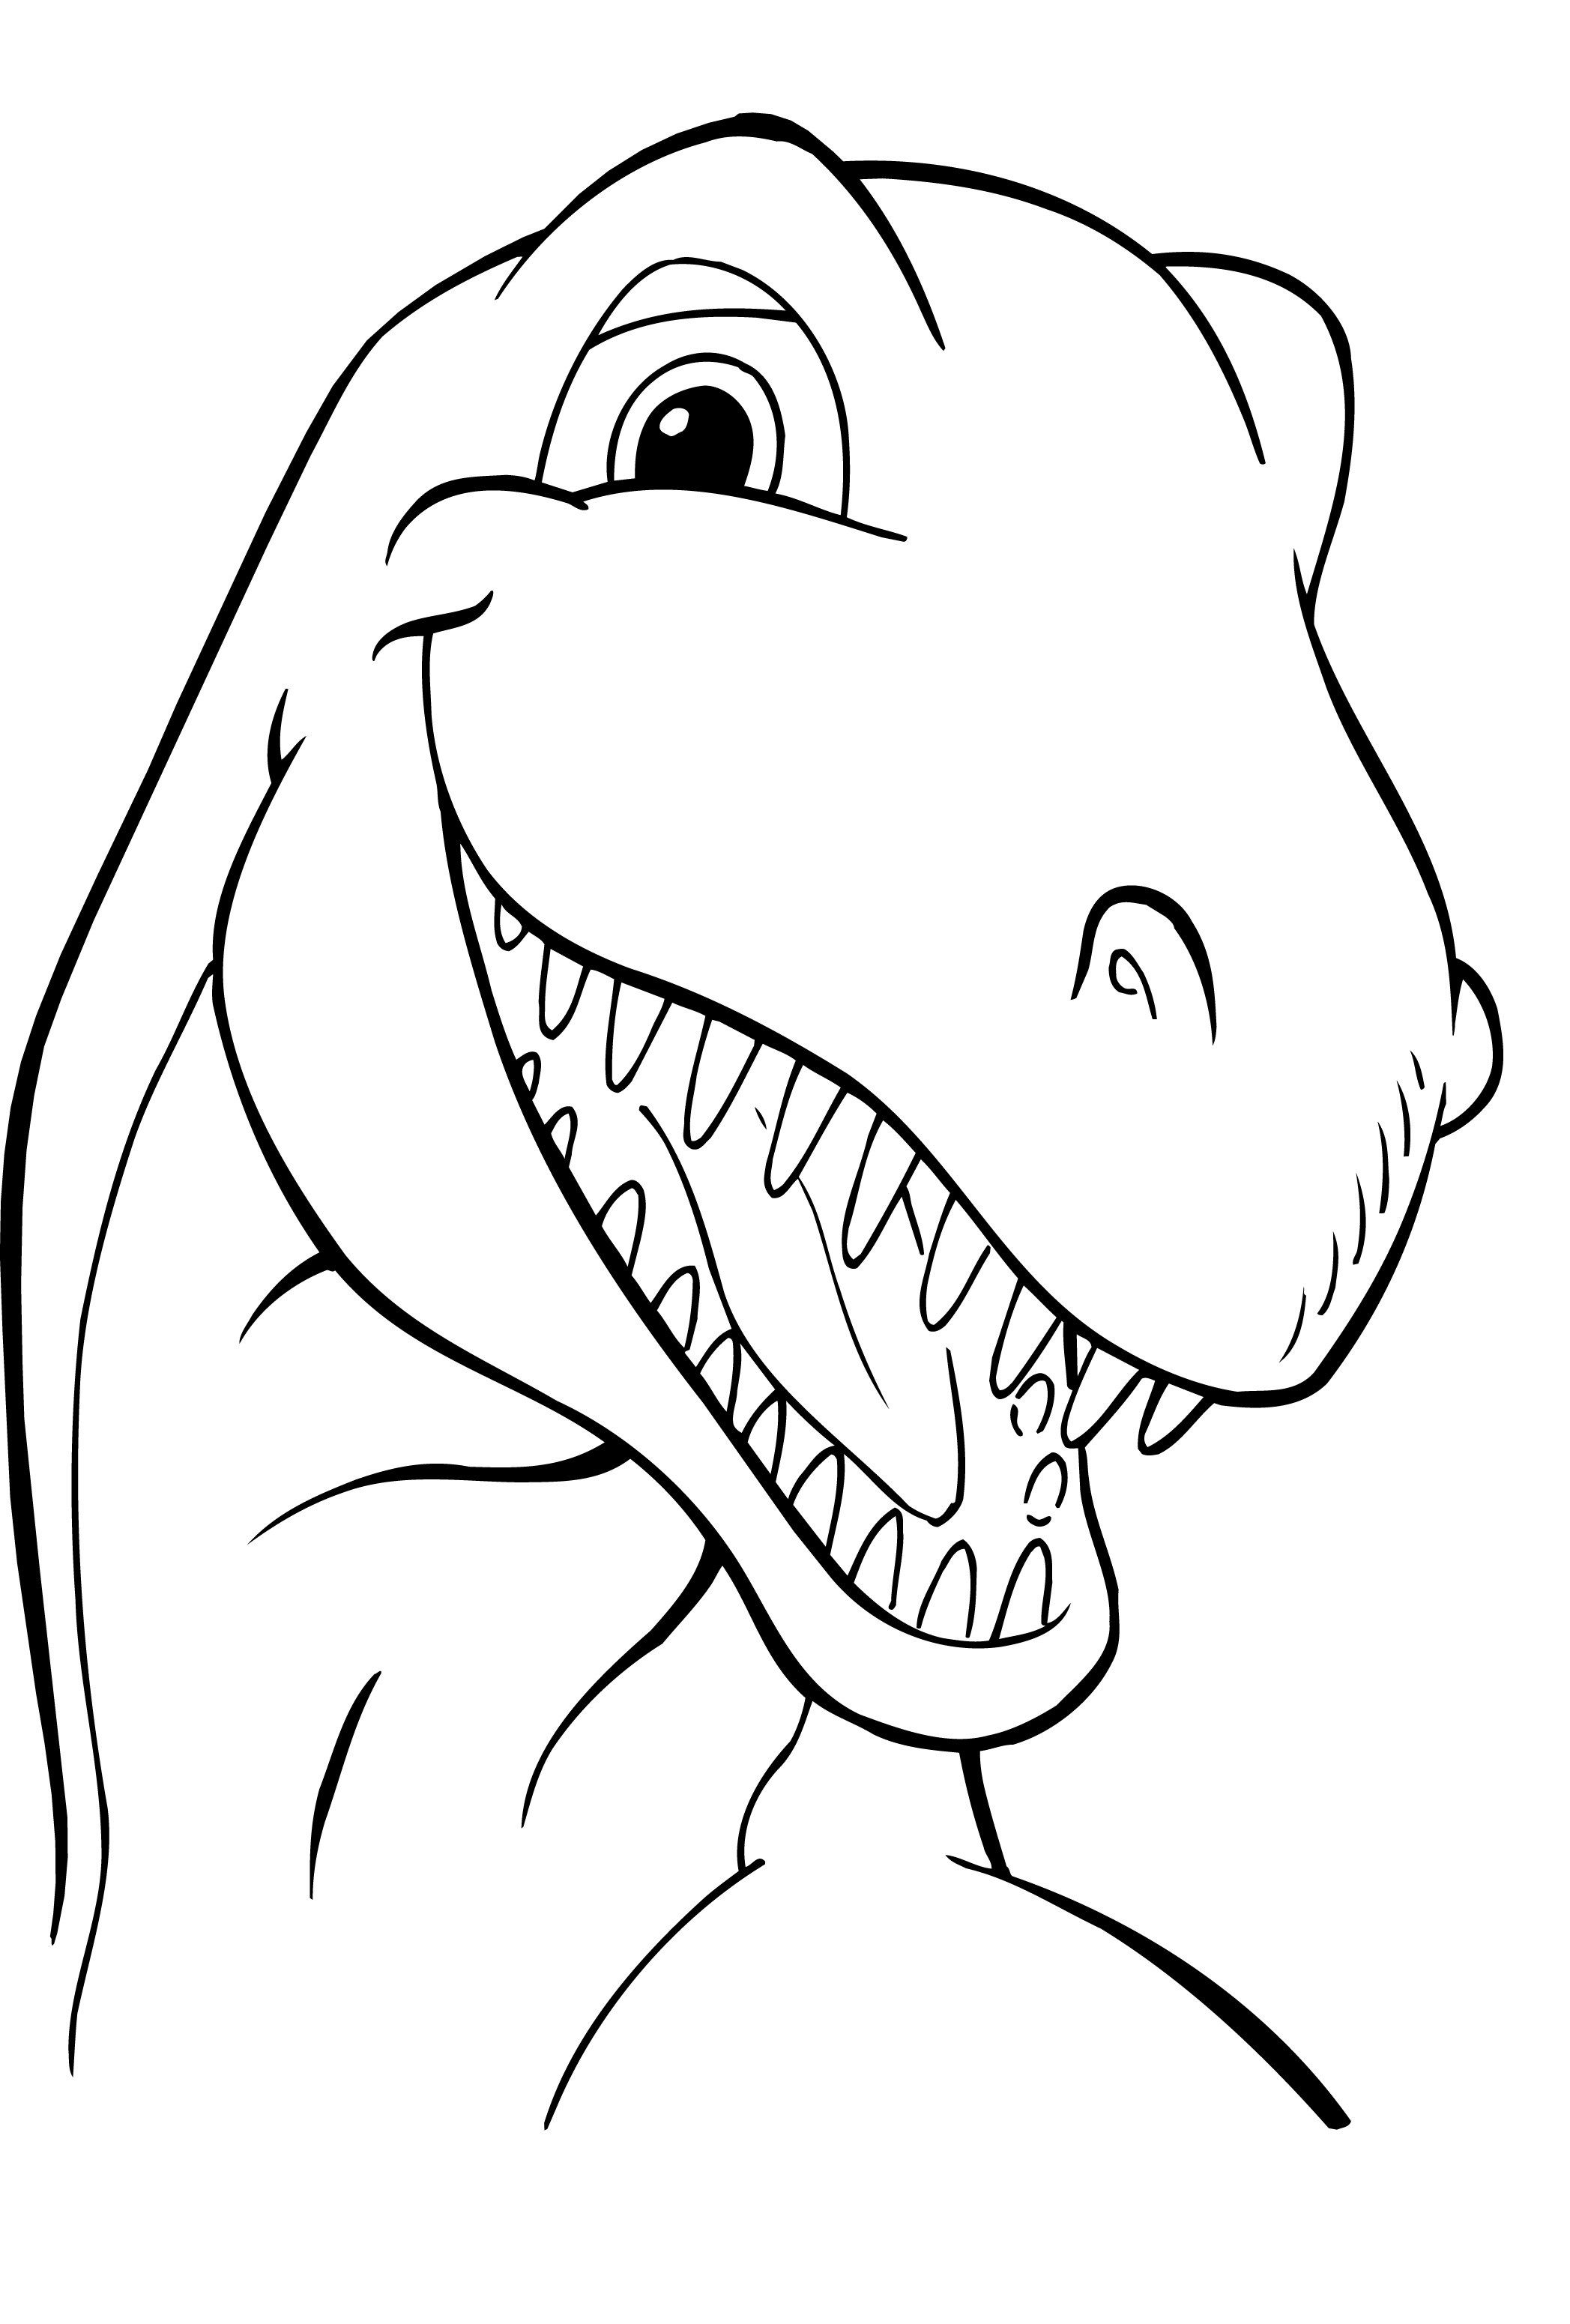 dinosaurs color pages lets coloring book prehistoric jurassic world dinosaurs dinosaurs color pages